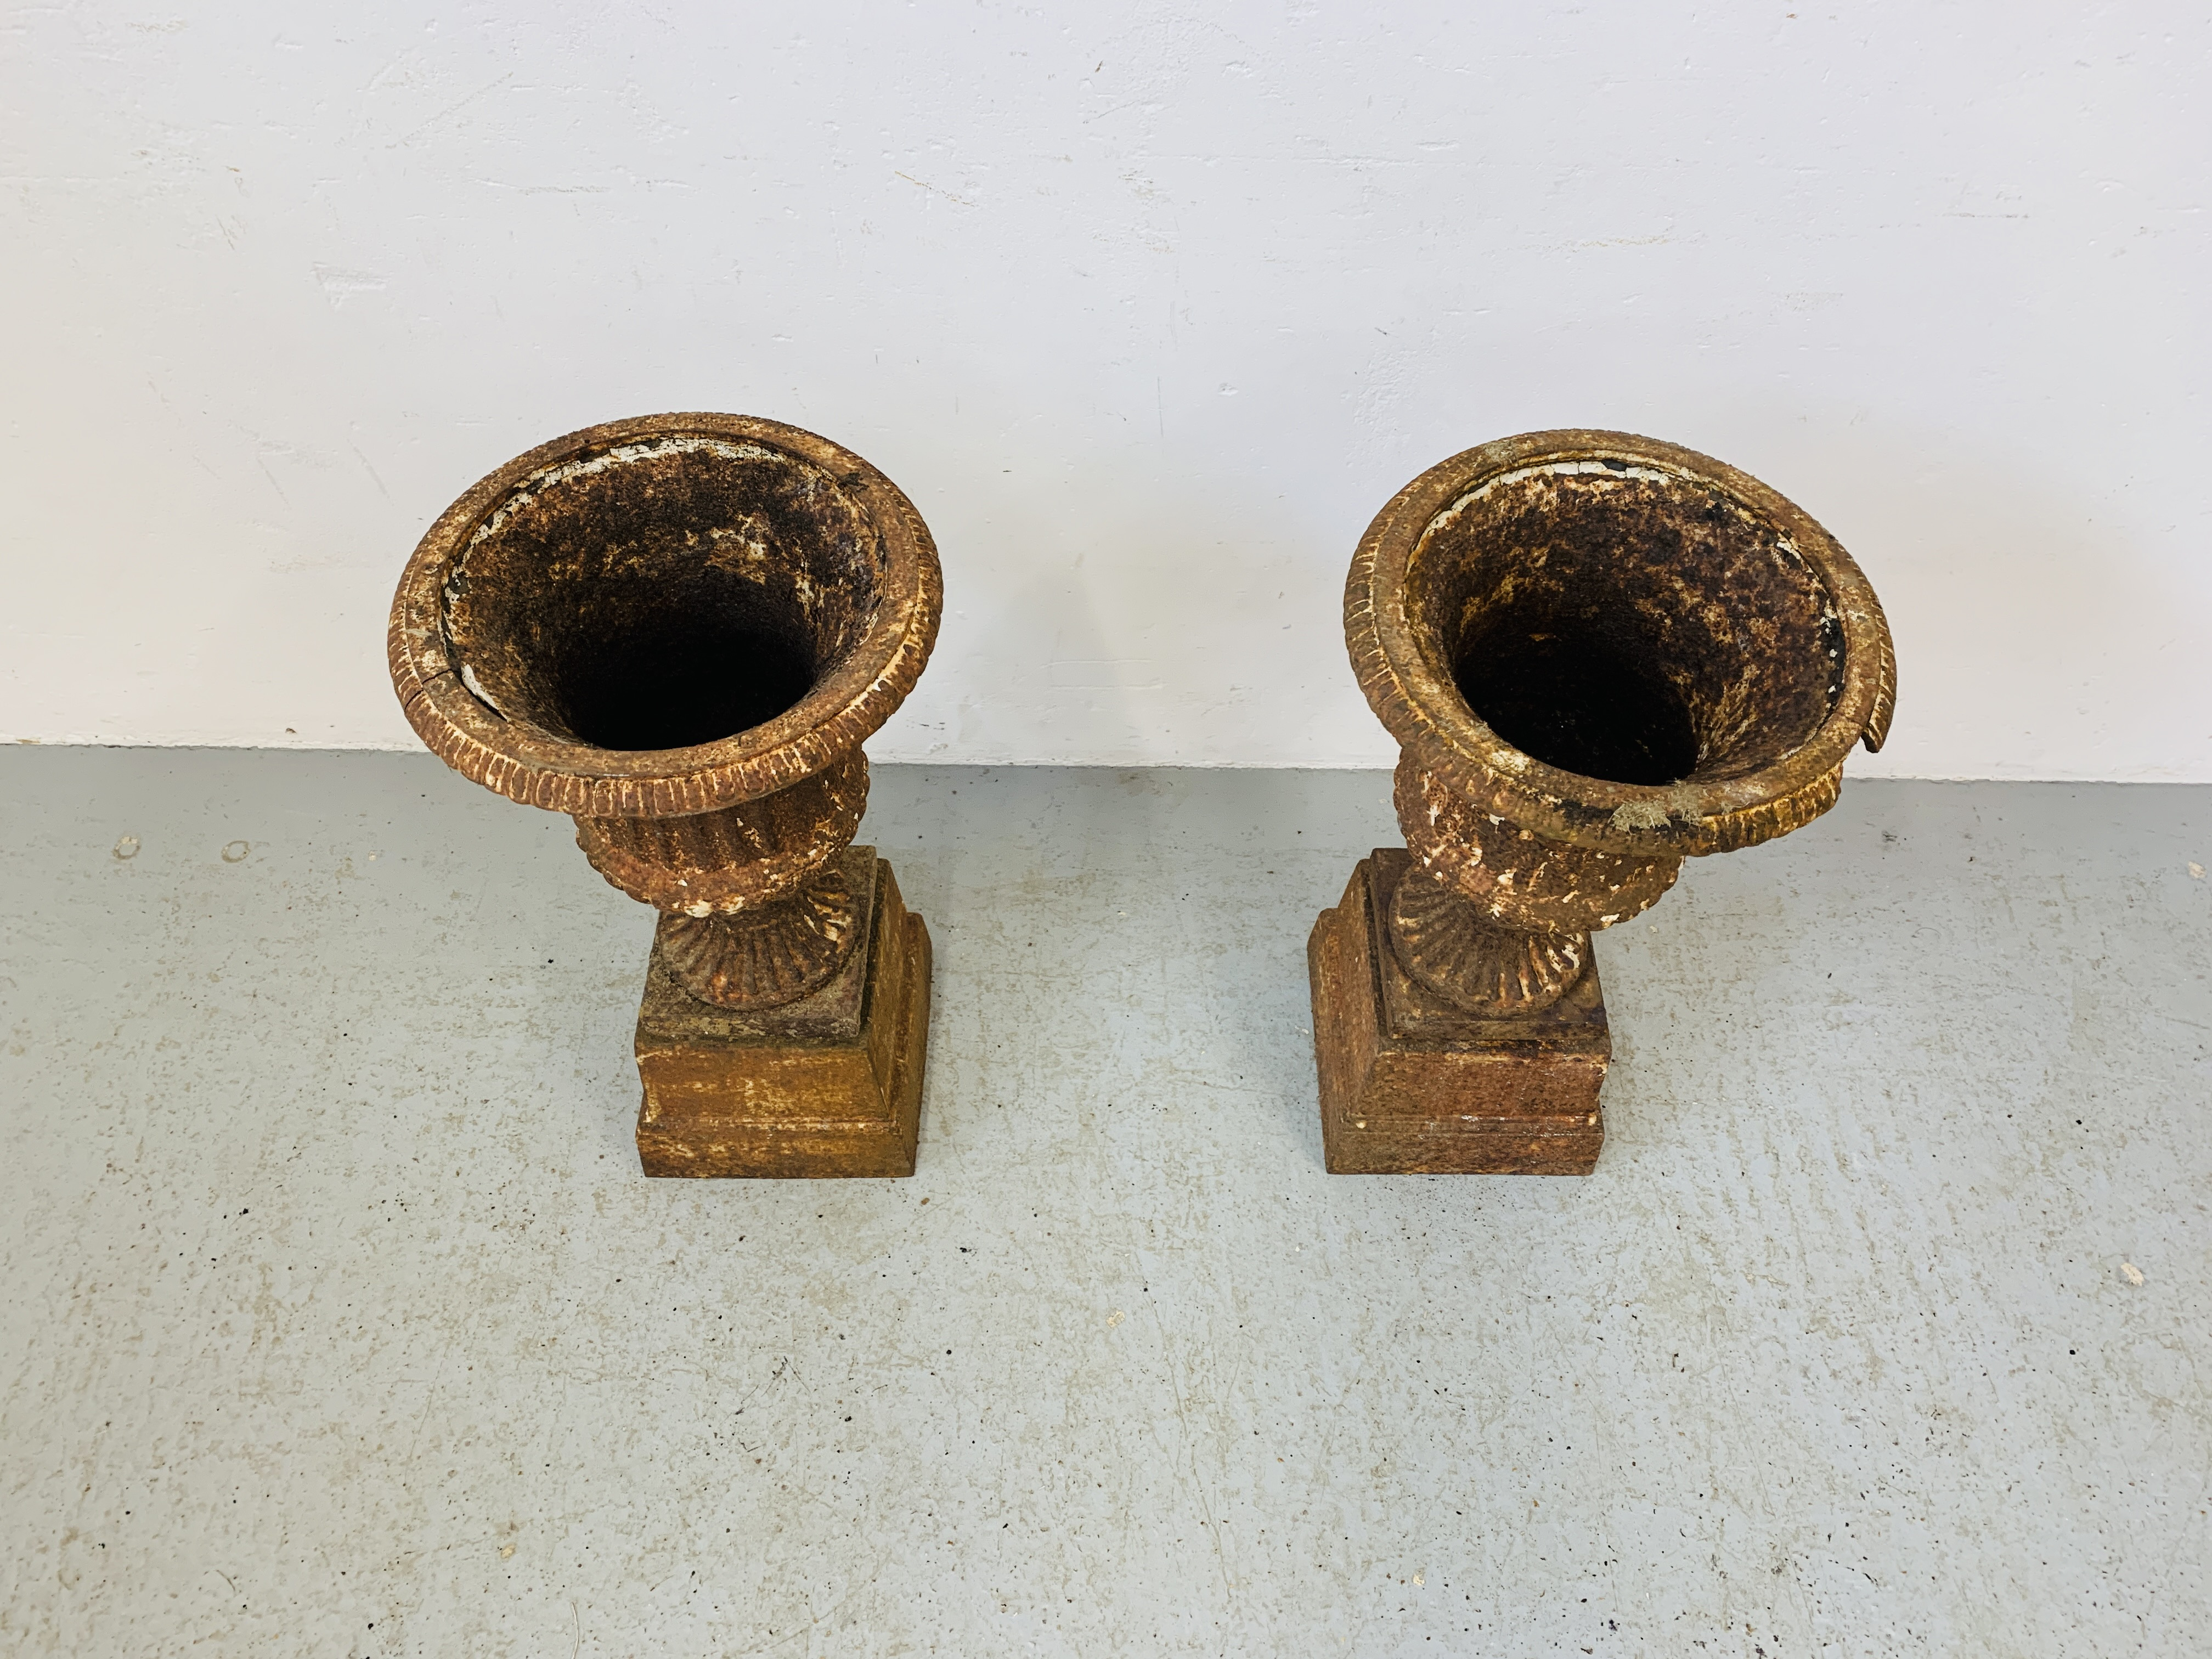 A PAIR OF CAST IRON TULIP SHAPE GARDEN URNS ON STANDS A/F CONDITION - OVERALL HEIGHT 68CM. - Image 2 of 13